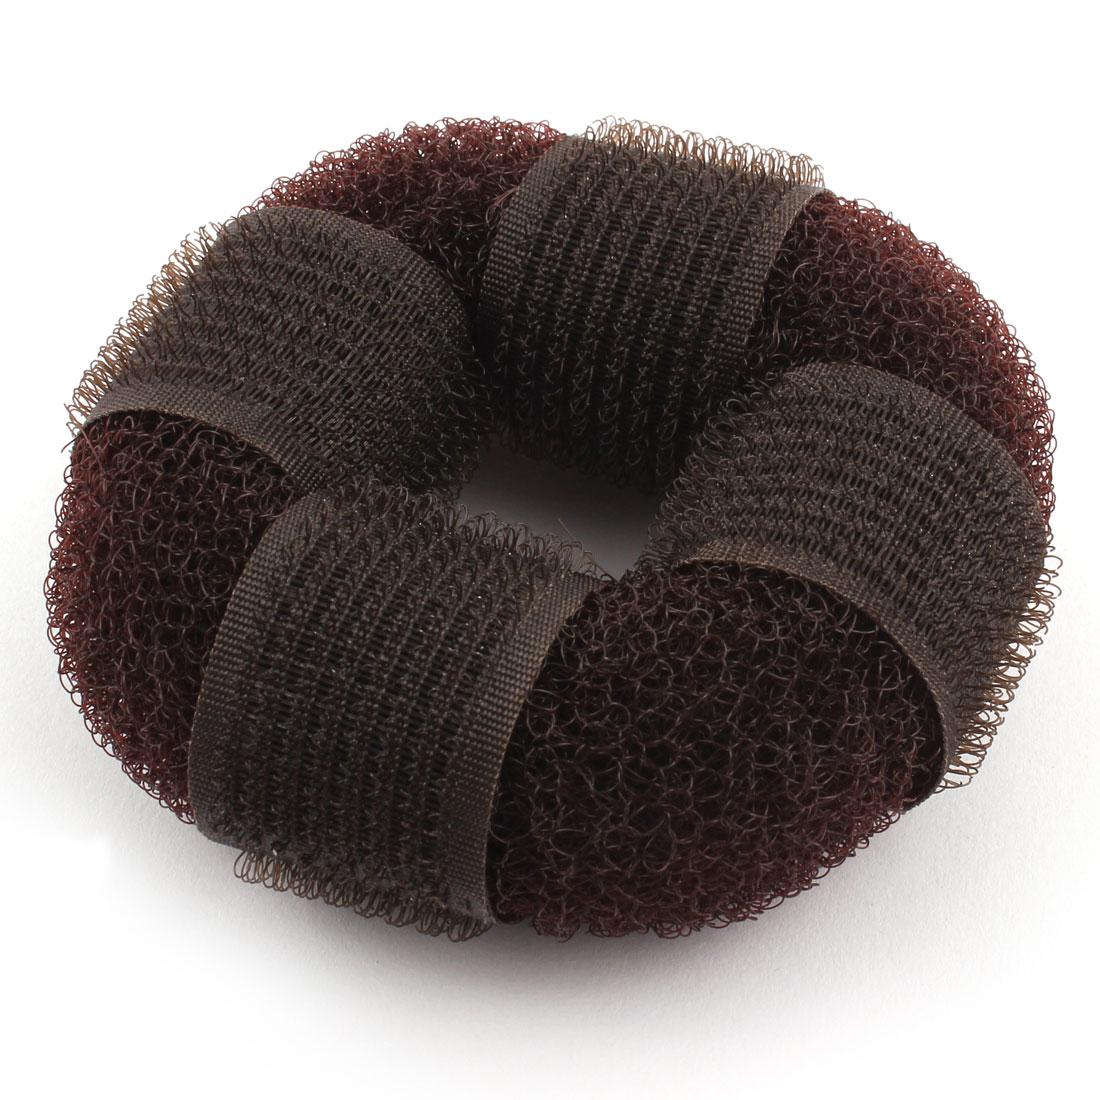 Lady Nylon Net Donut Shape Hair Ring Bun Maker Coffee Color 3.5 Inch Diameter